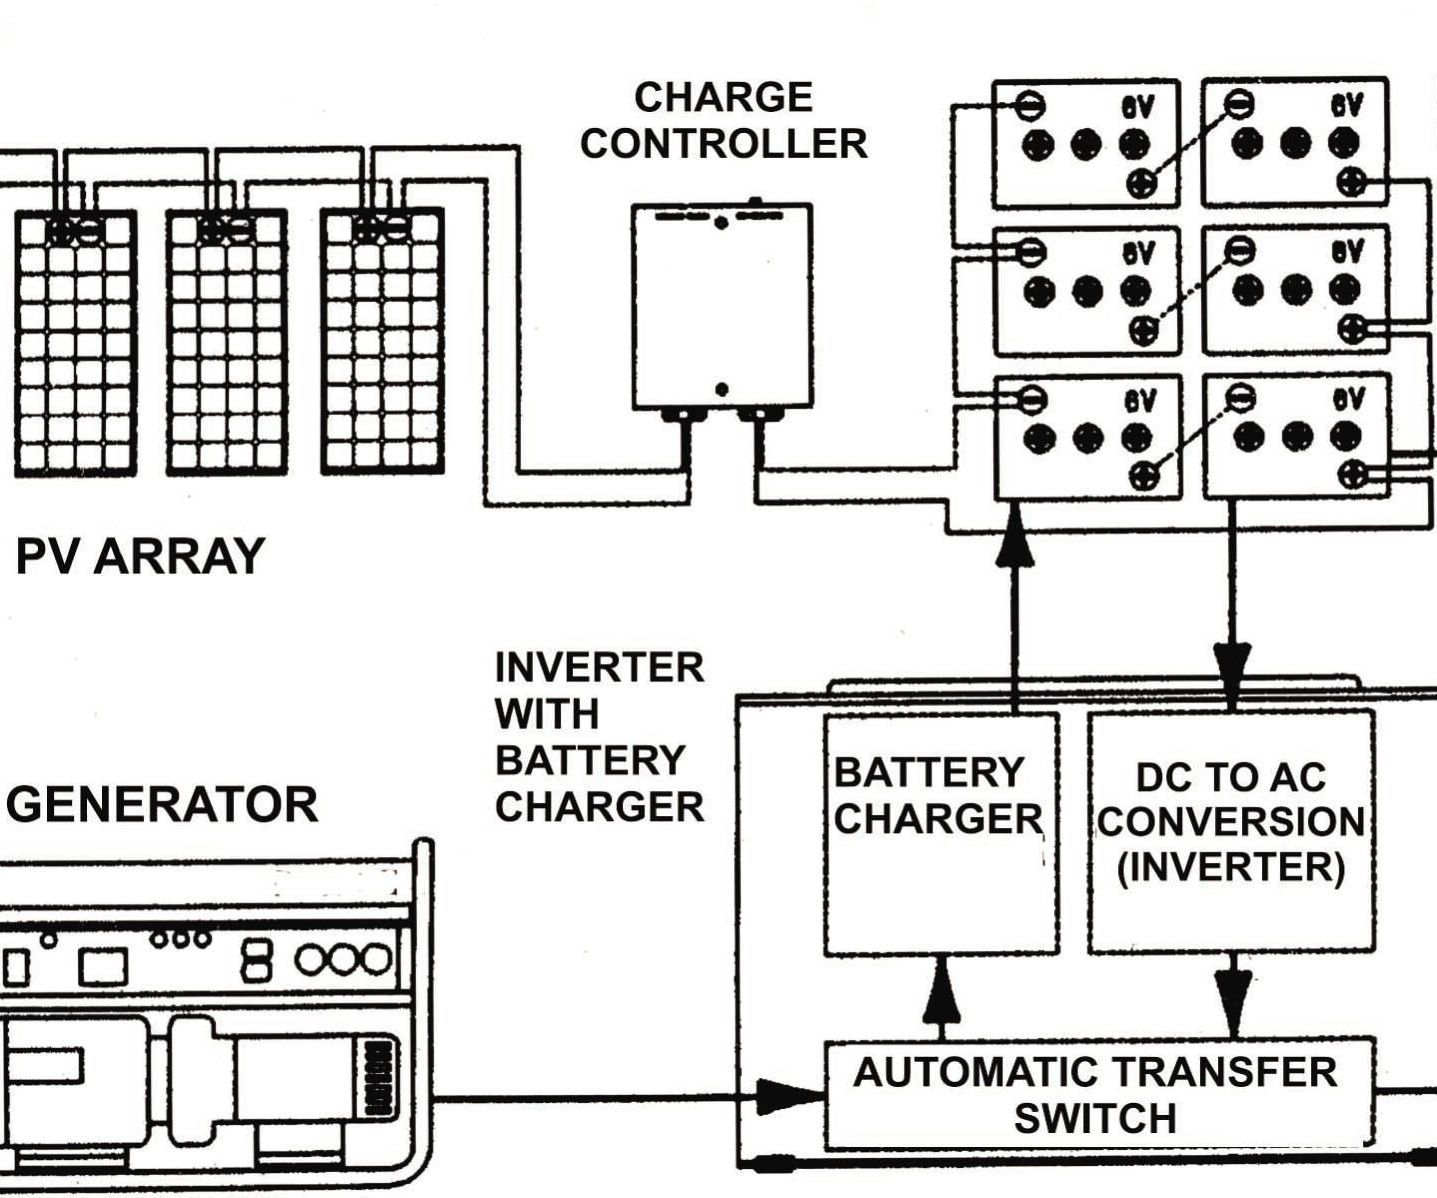 hight resolution of diagram of a off grid solar power system with generator back up